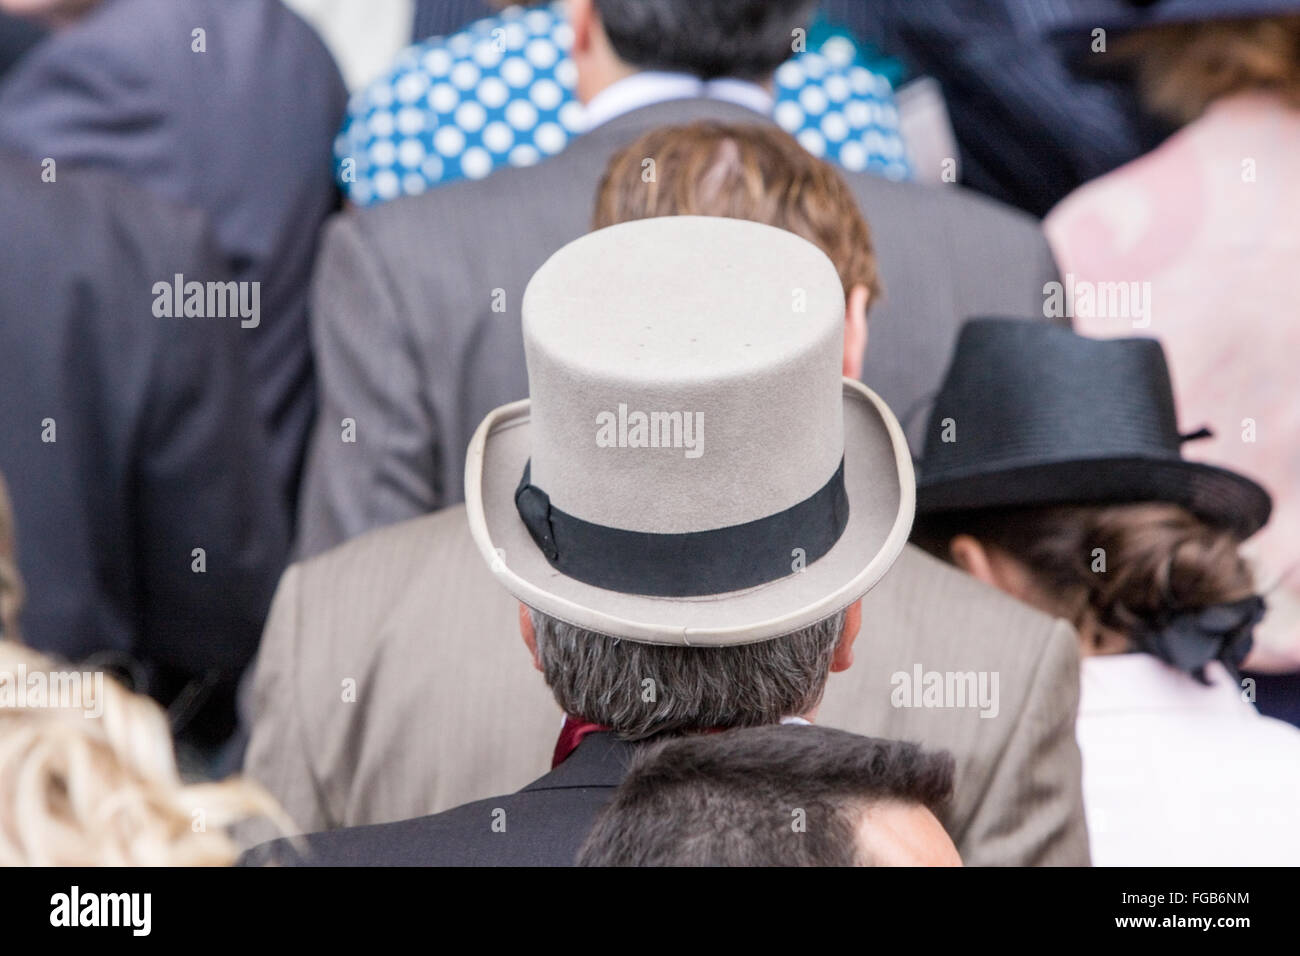 Royal Ascot horse race meeting,Ascot,Berkshire,England,U.K. Europe. - Stock Image